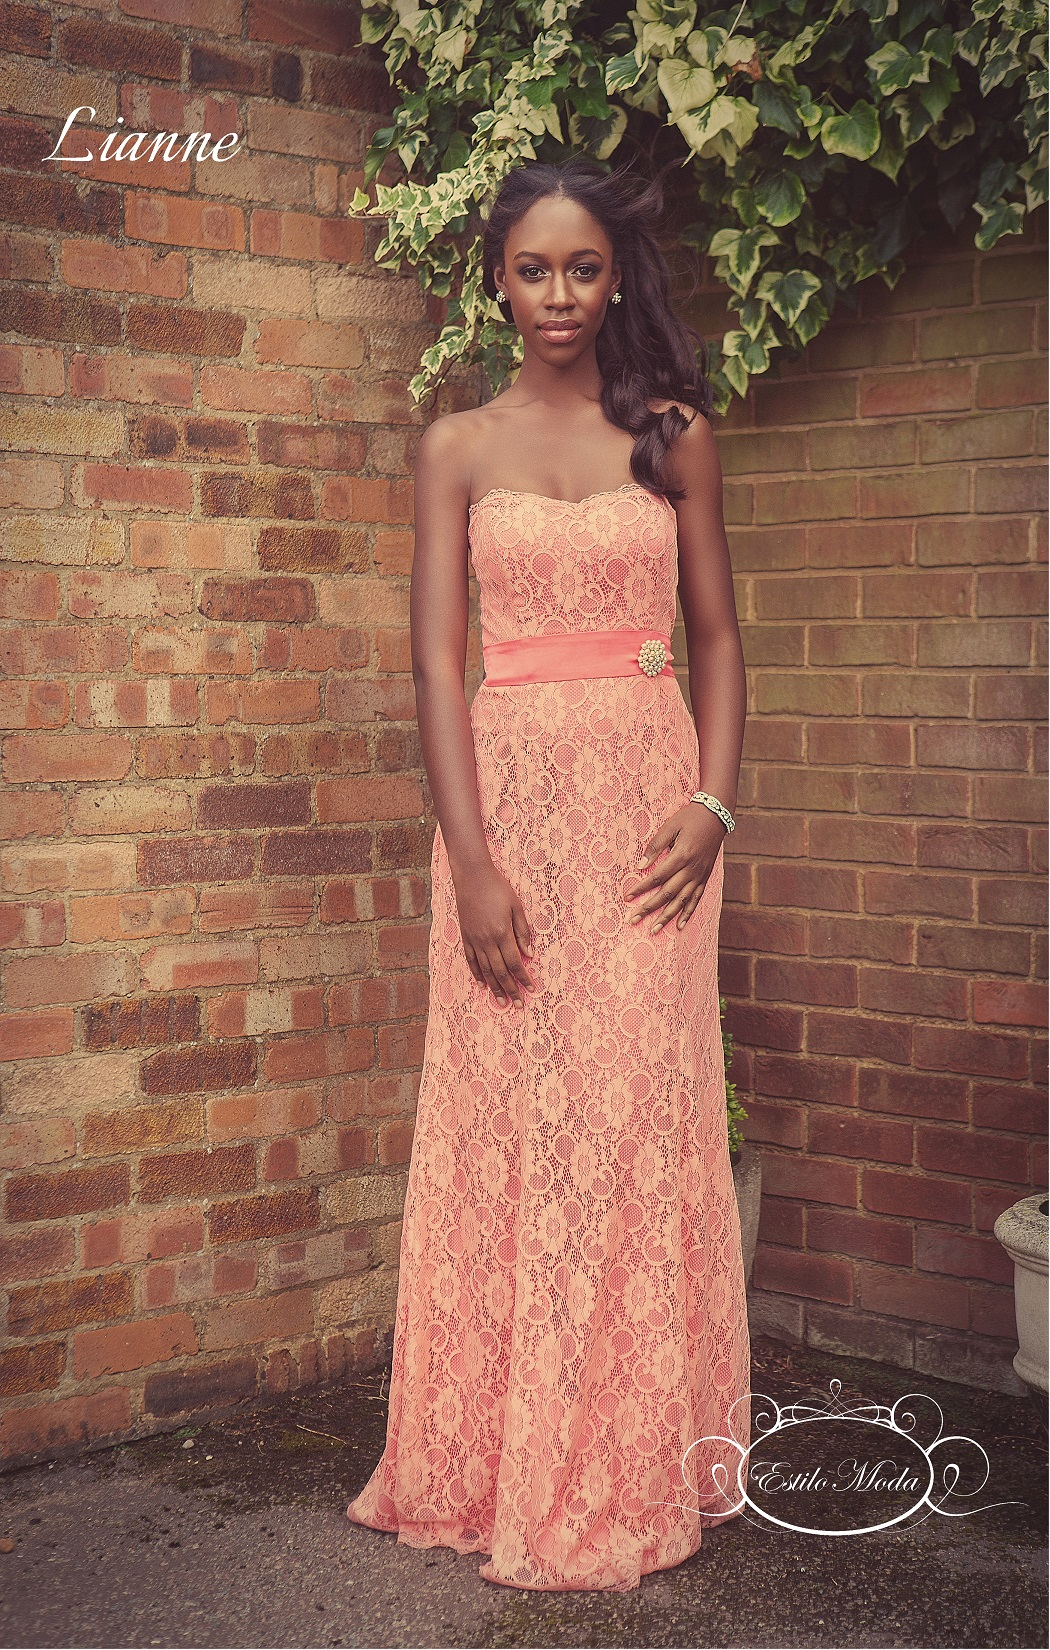 Sweetheart neckline strapless full lace mermaid bridesmaids dress prom dress, Lianne Back, lace bridesmaids dress, lace prom dress, mermaid prom dress, straight prom dress, sheath prom dress, lace bridesmaids dresses milton keynes. long lace mermaid bridesmaid dress